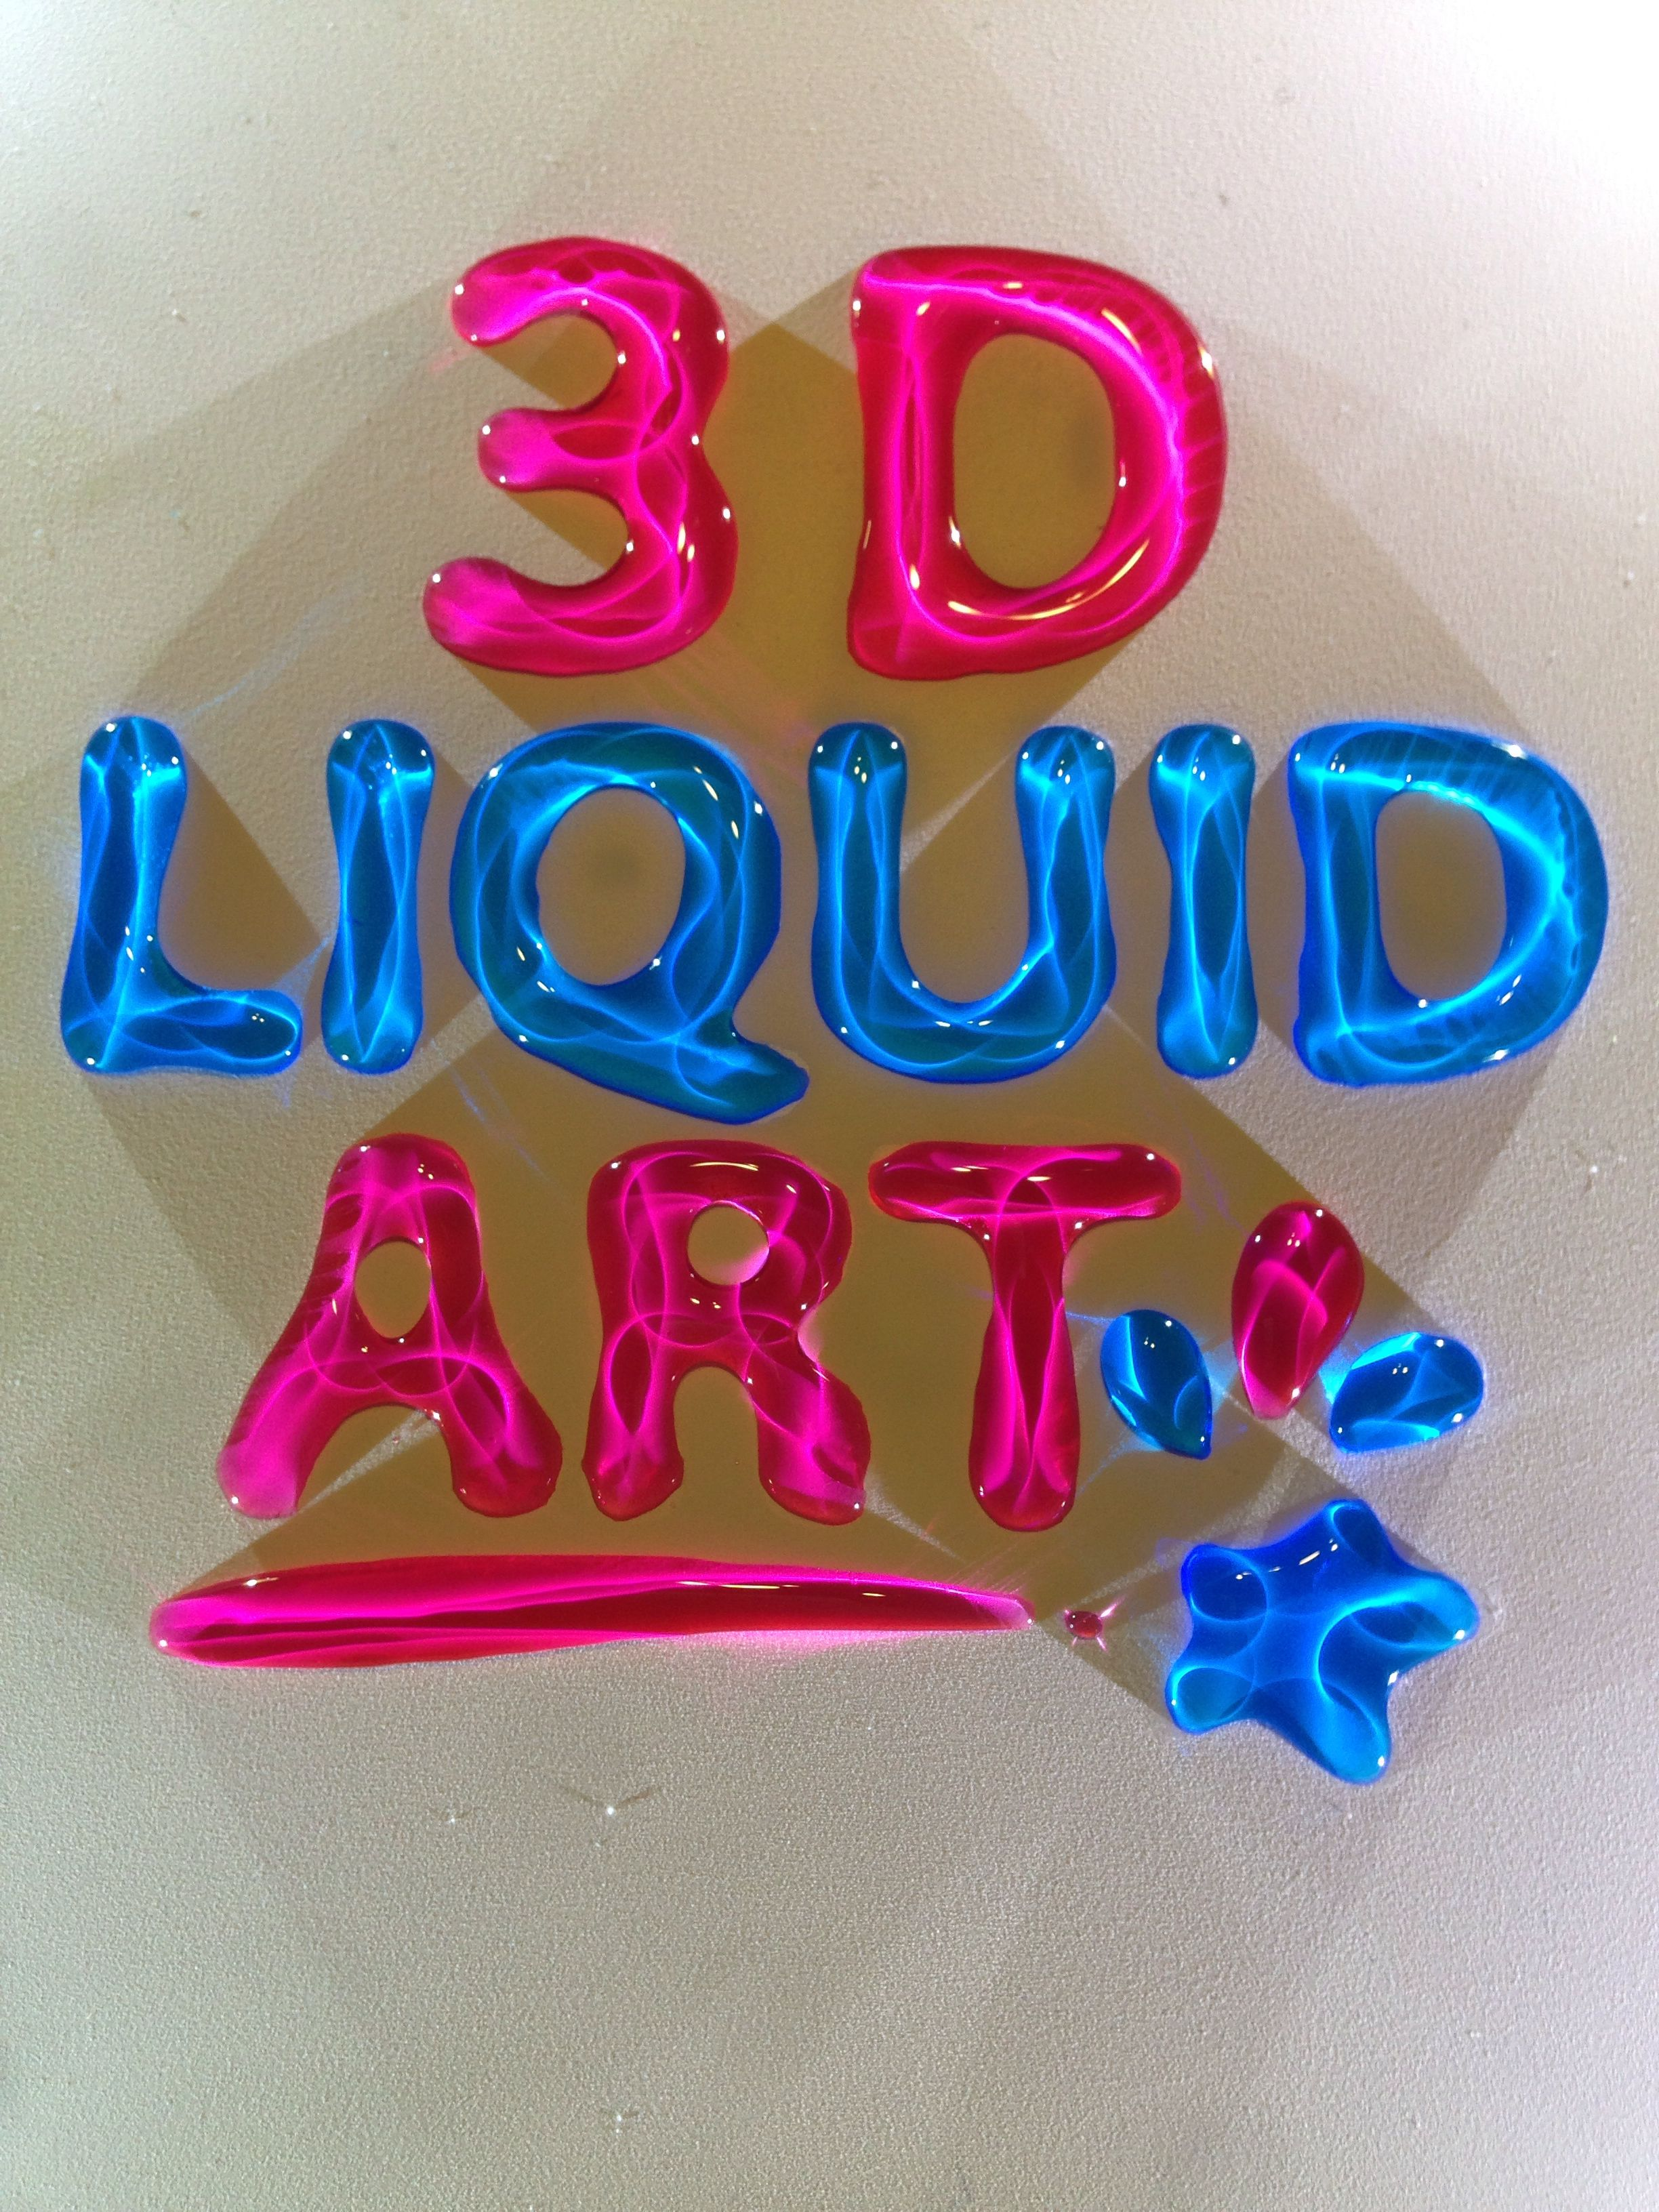 3d Liquid Art Is Made From Colored Water